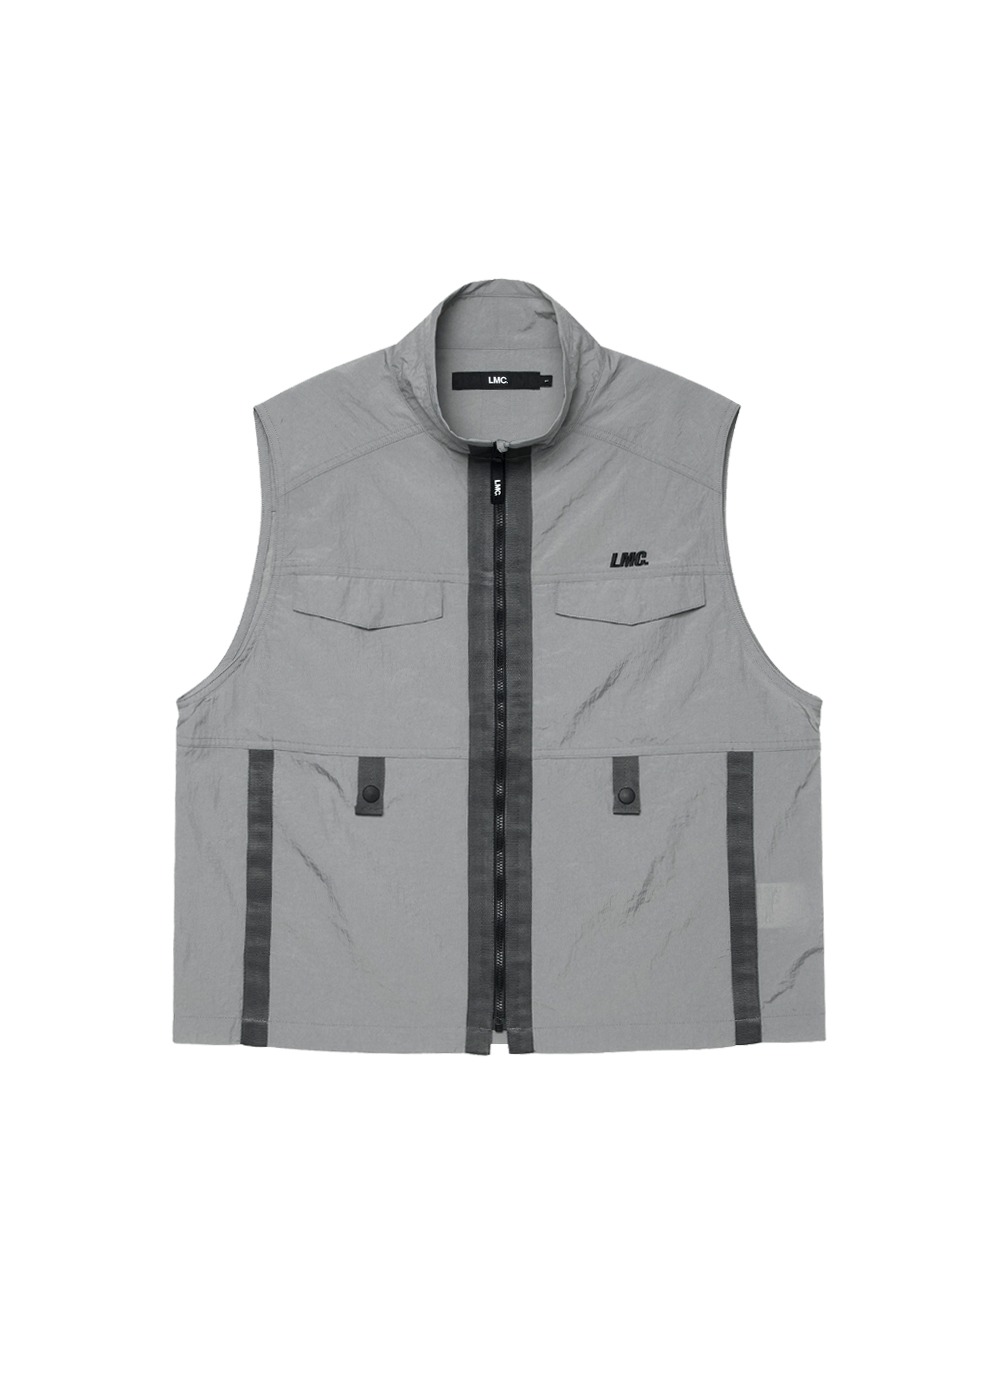 LMC TAPED UTILITY VEST gray